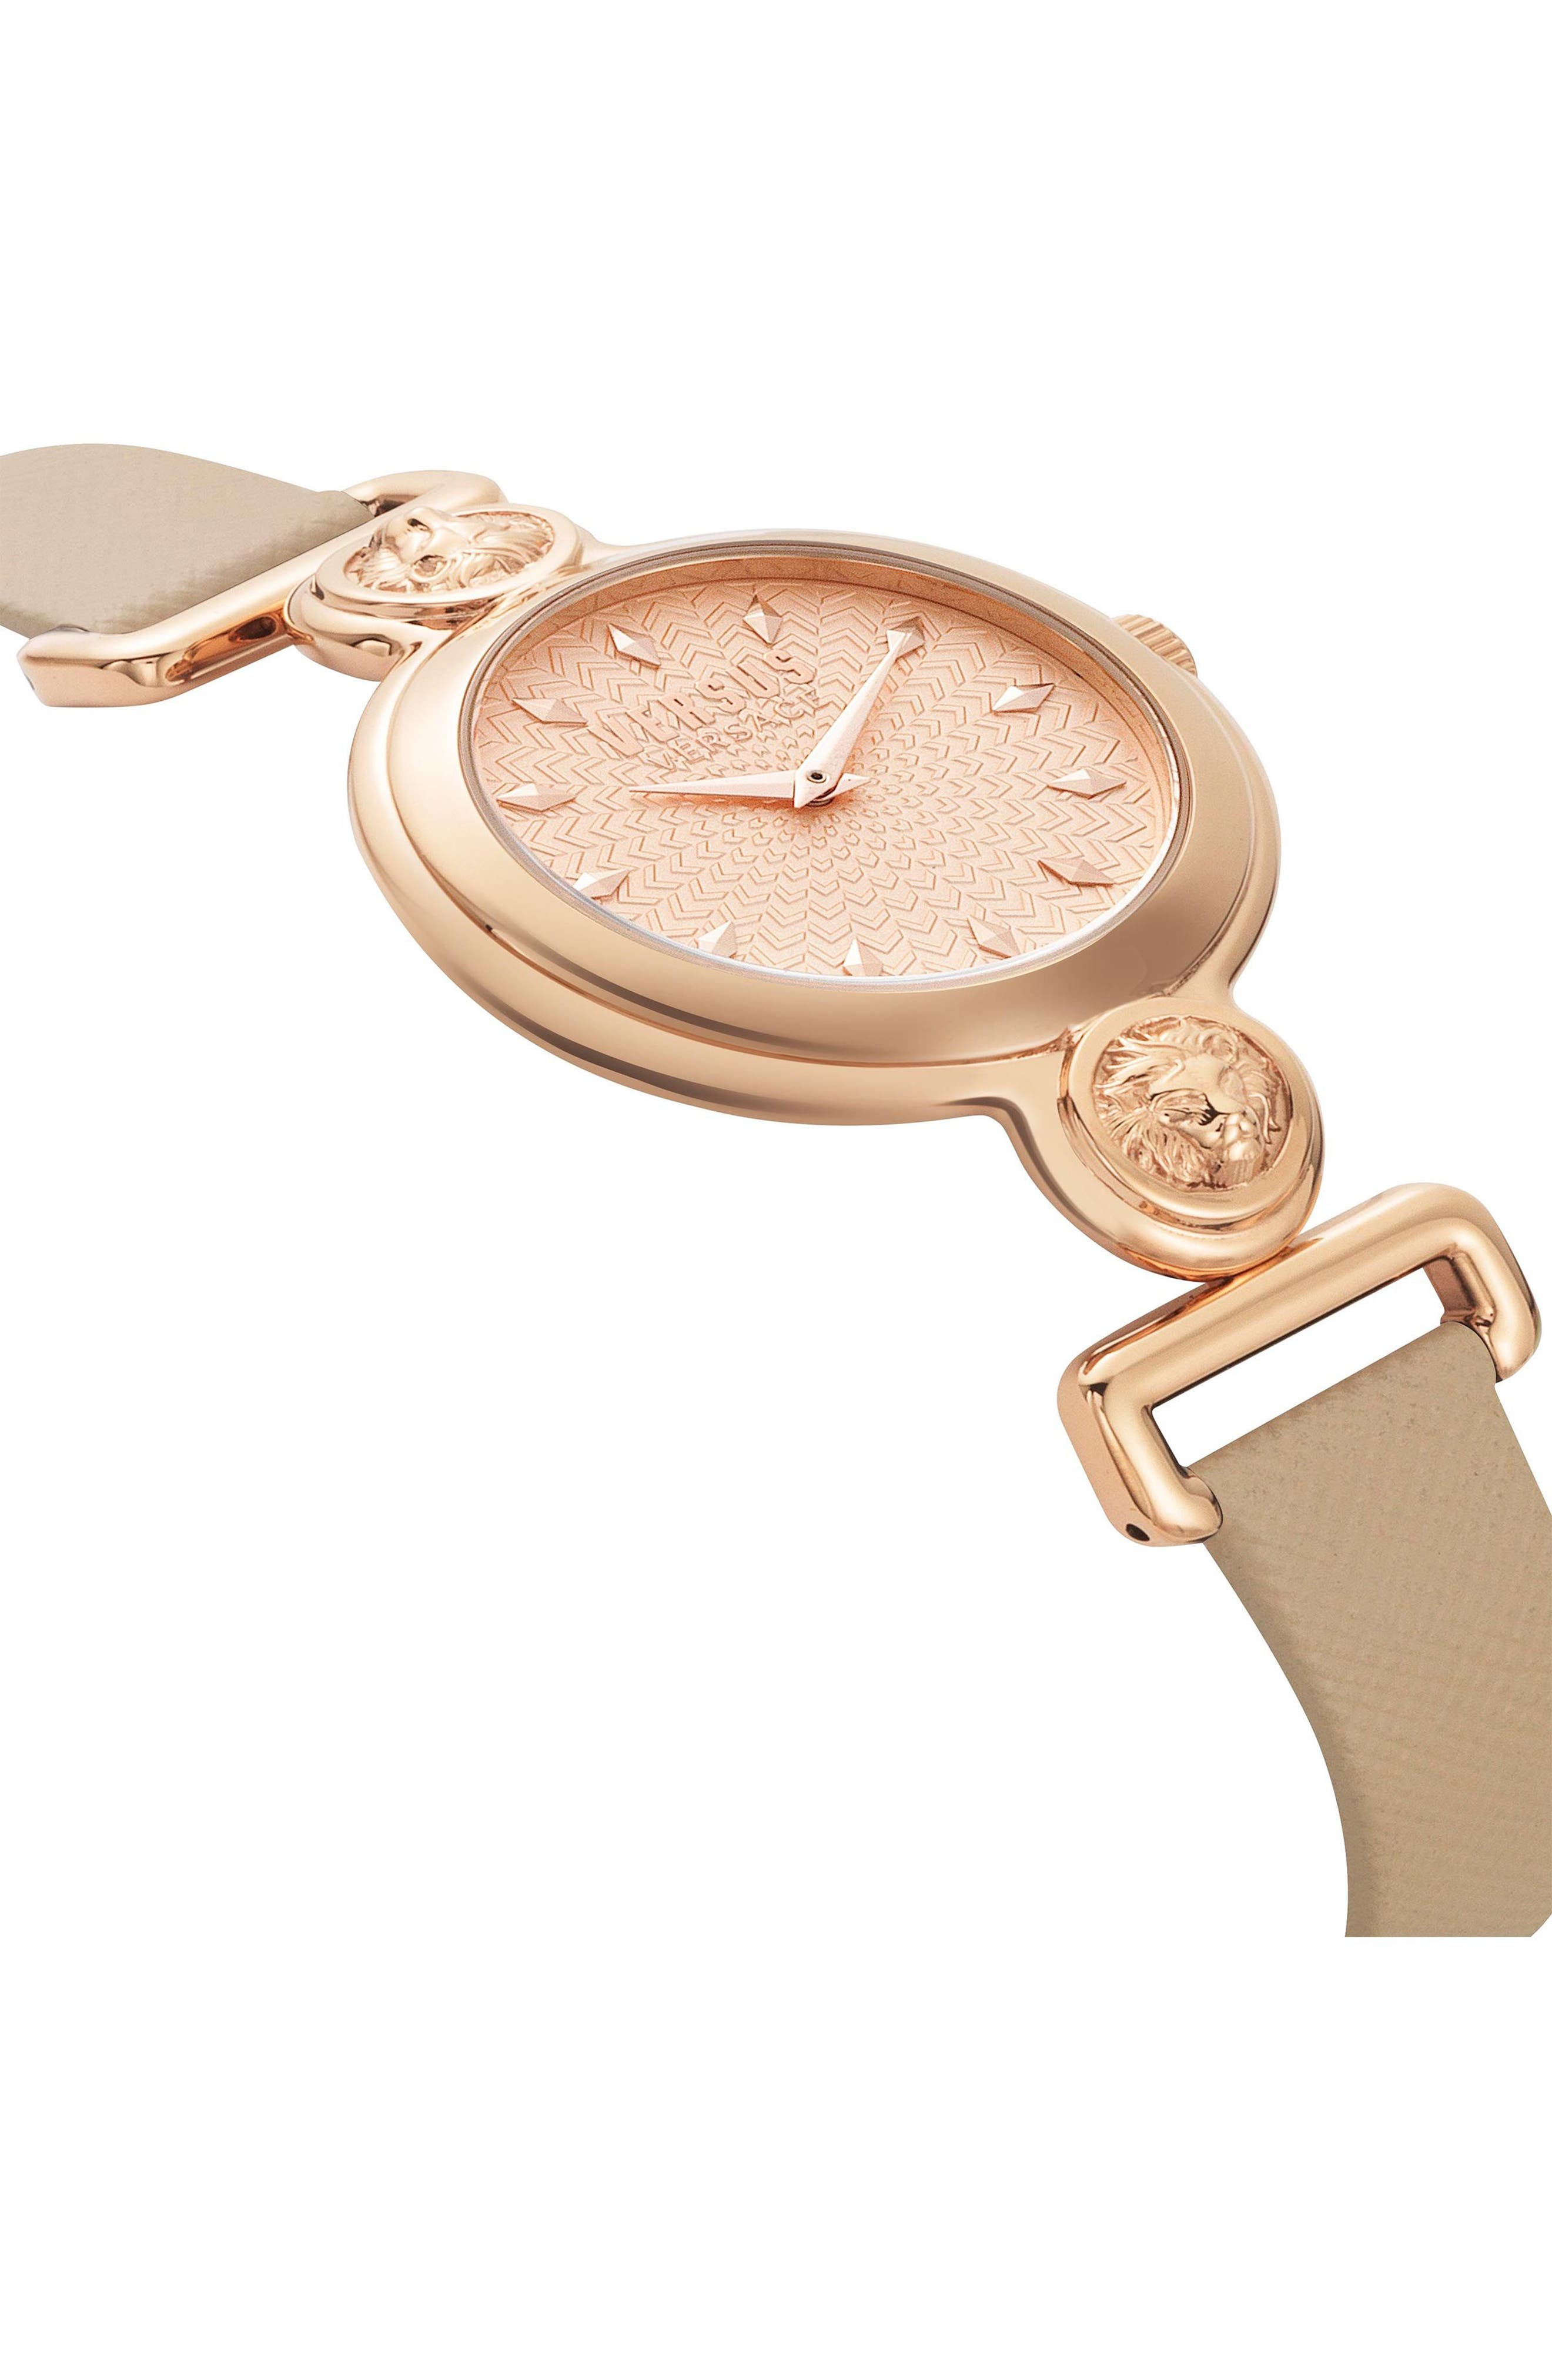 Sunnyridge Leather Strap Watch, 34mm,                             Alternate thumbnail 3, color,                             BLUSH/ ROSE GOLD